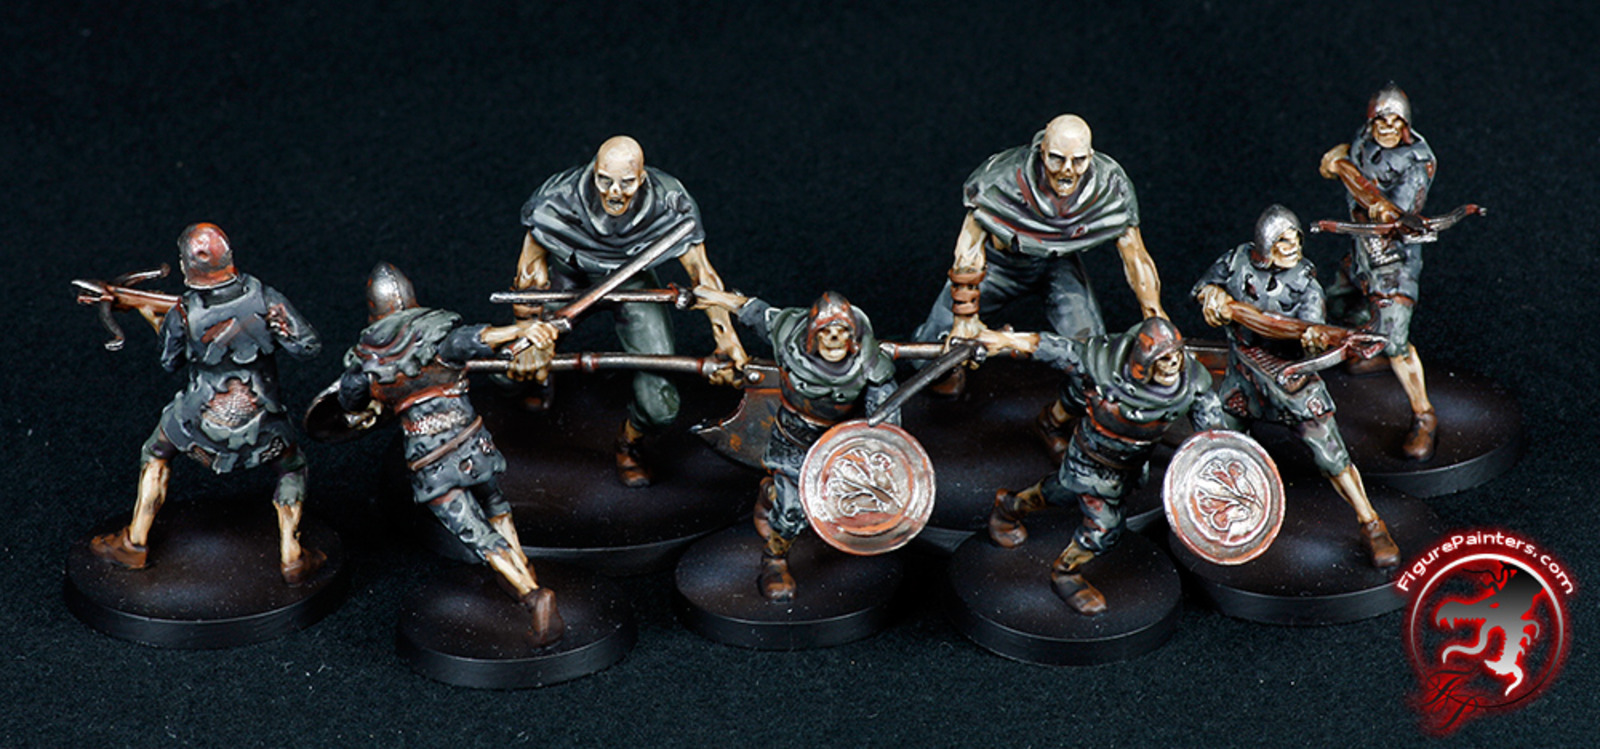 dark-souls-board-game-hollow-soldiers.jpg